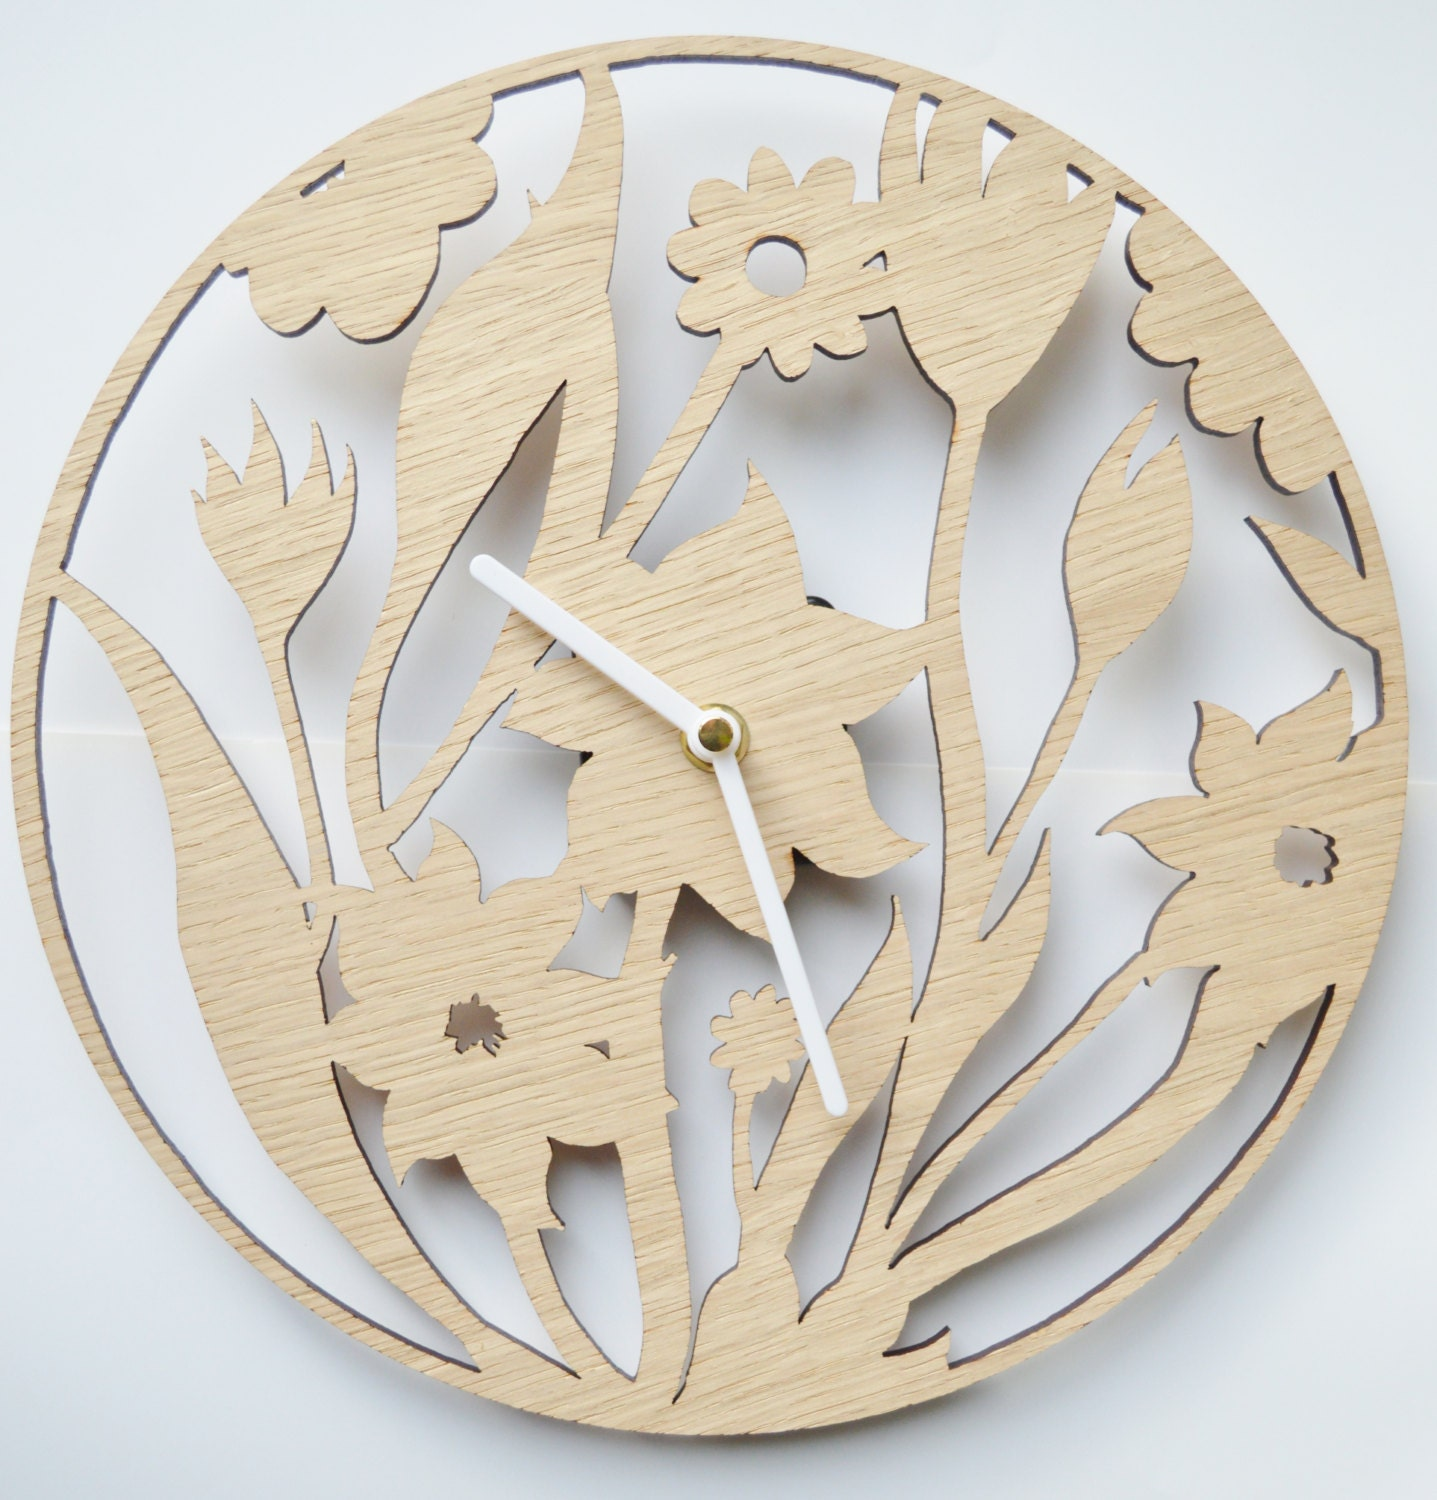 Floral Design Clock Laser Cut Clock Wooden Clock